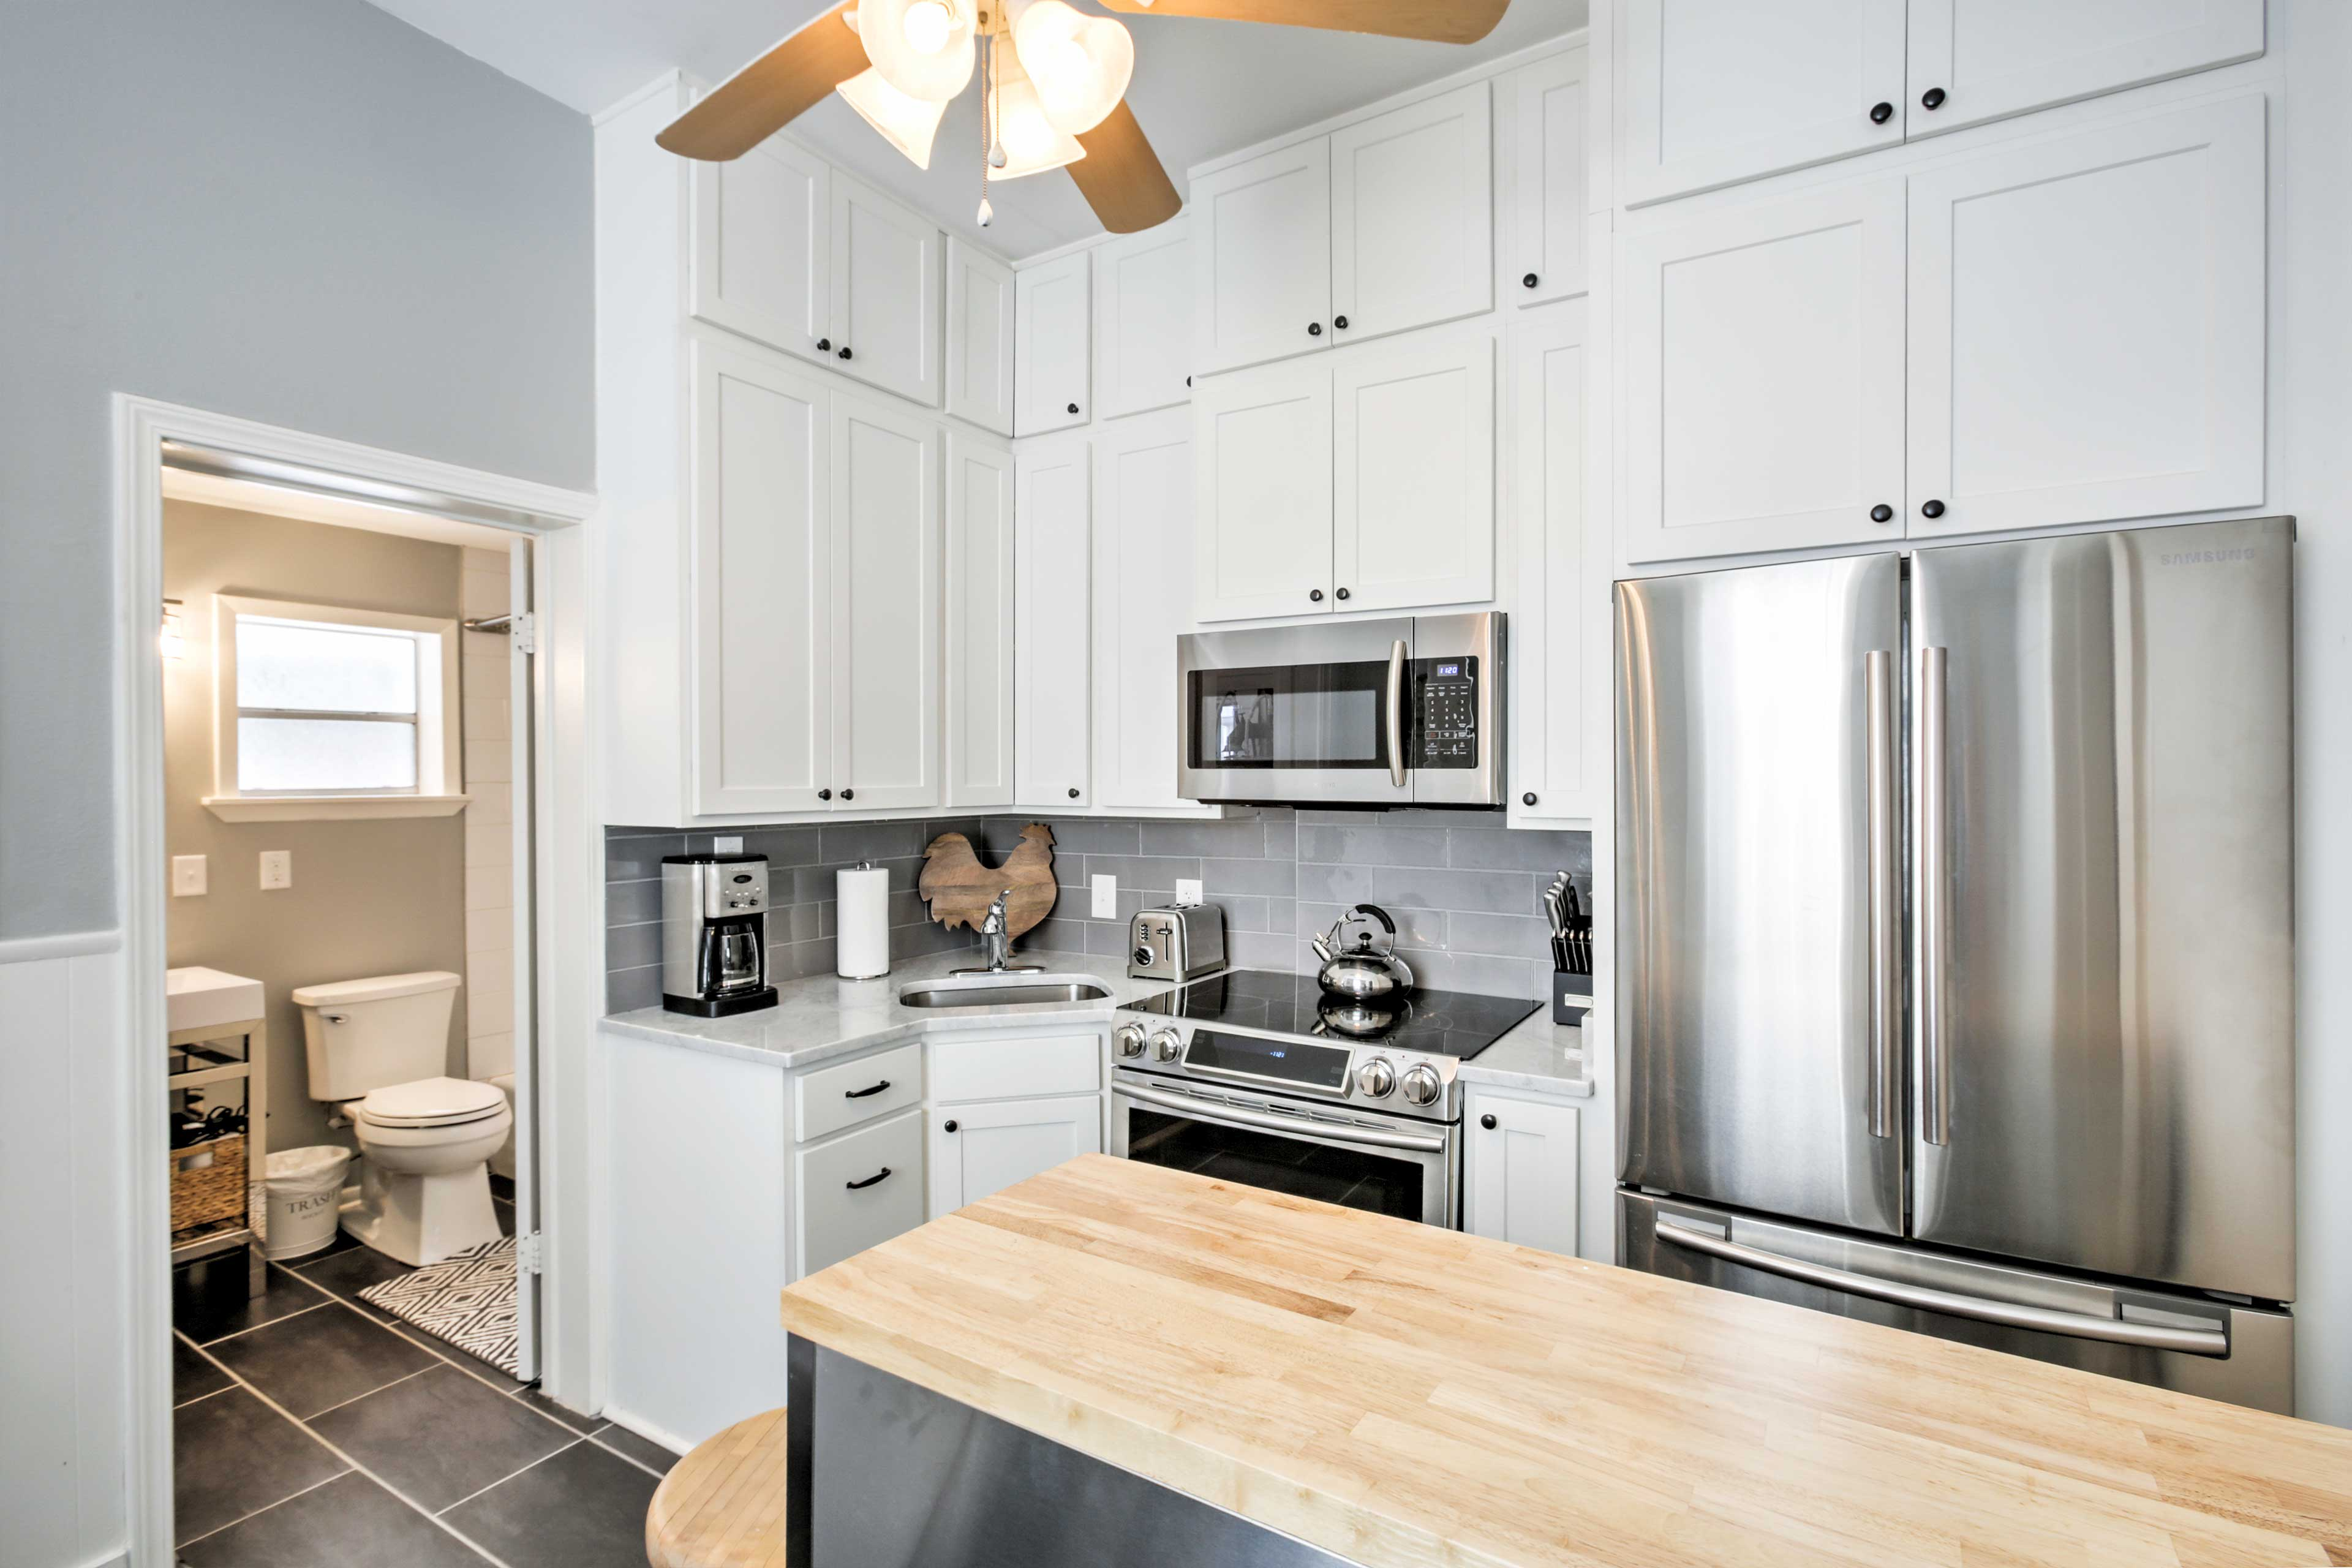 Utilize the stainless steel appliances in the kitchen for nights spent dining in.